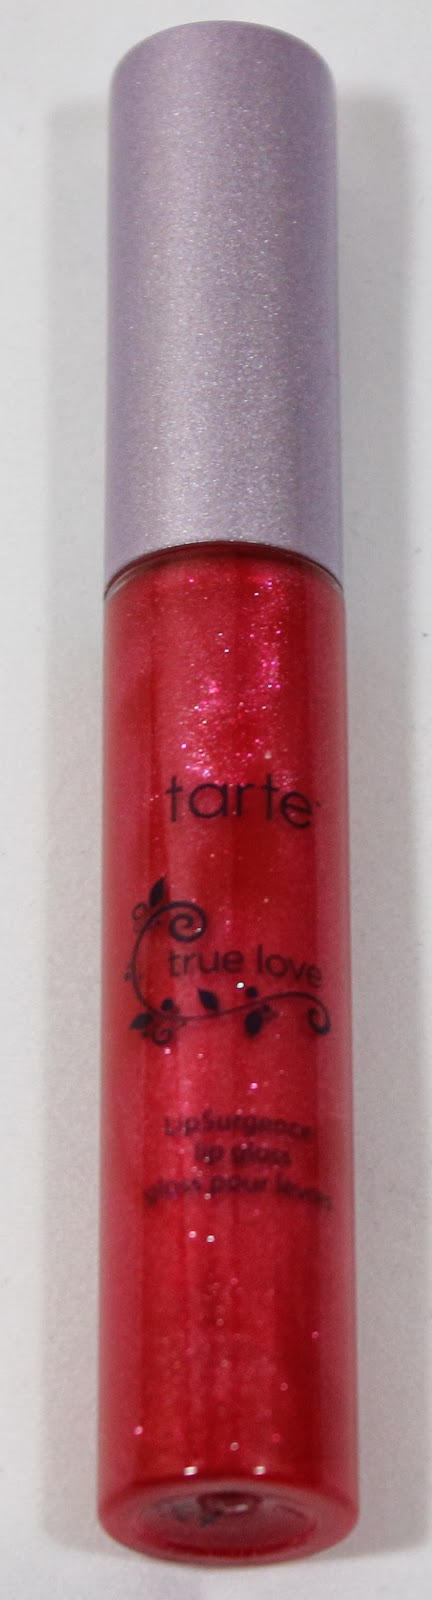 Tarte Lipsurgence Lip Gloss in True Love